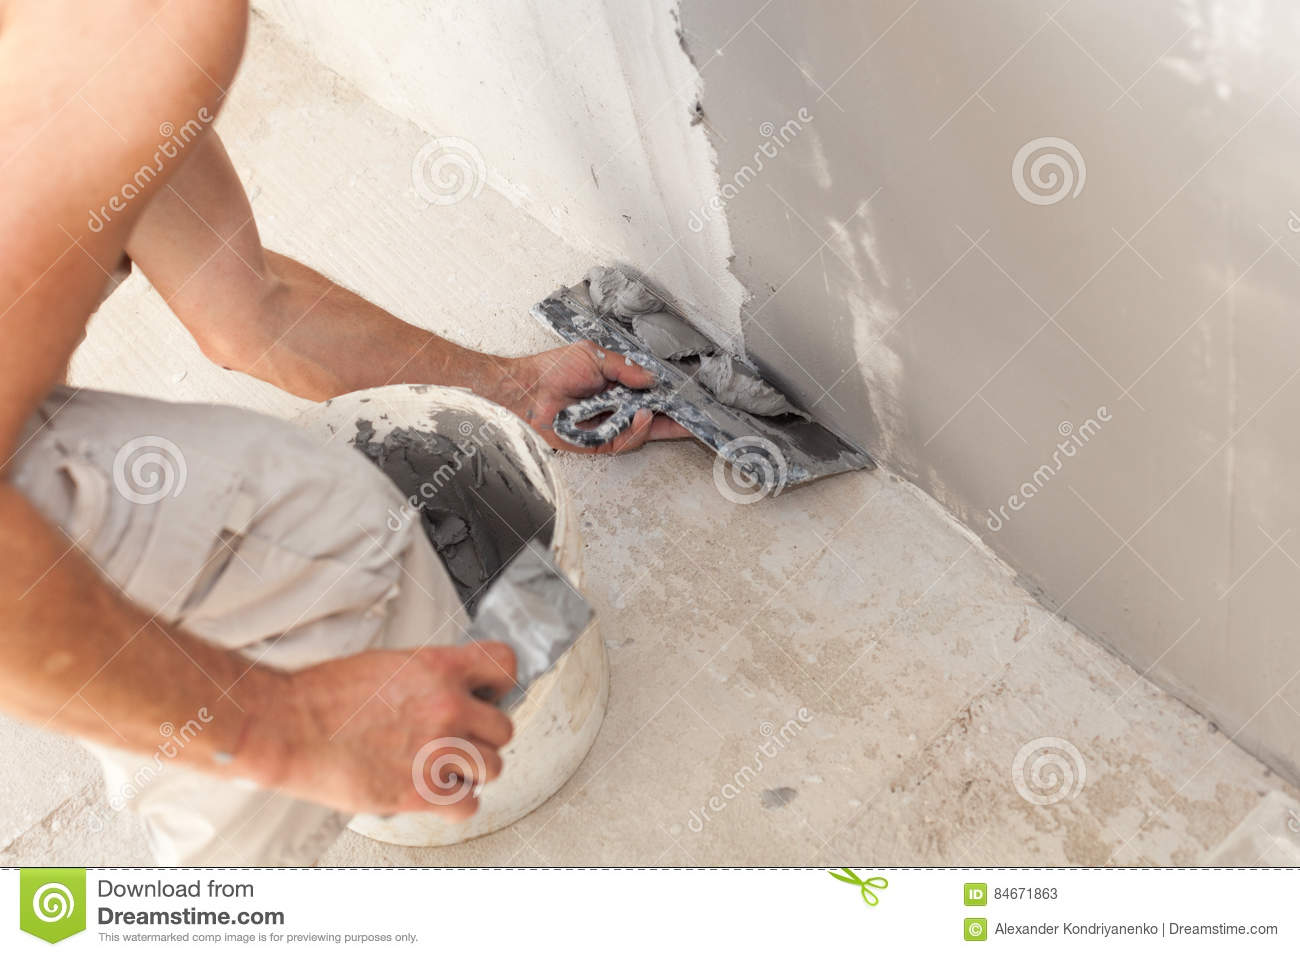 Closeup of repairman hand plastering a wall with putty knife or spatula.